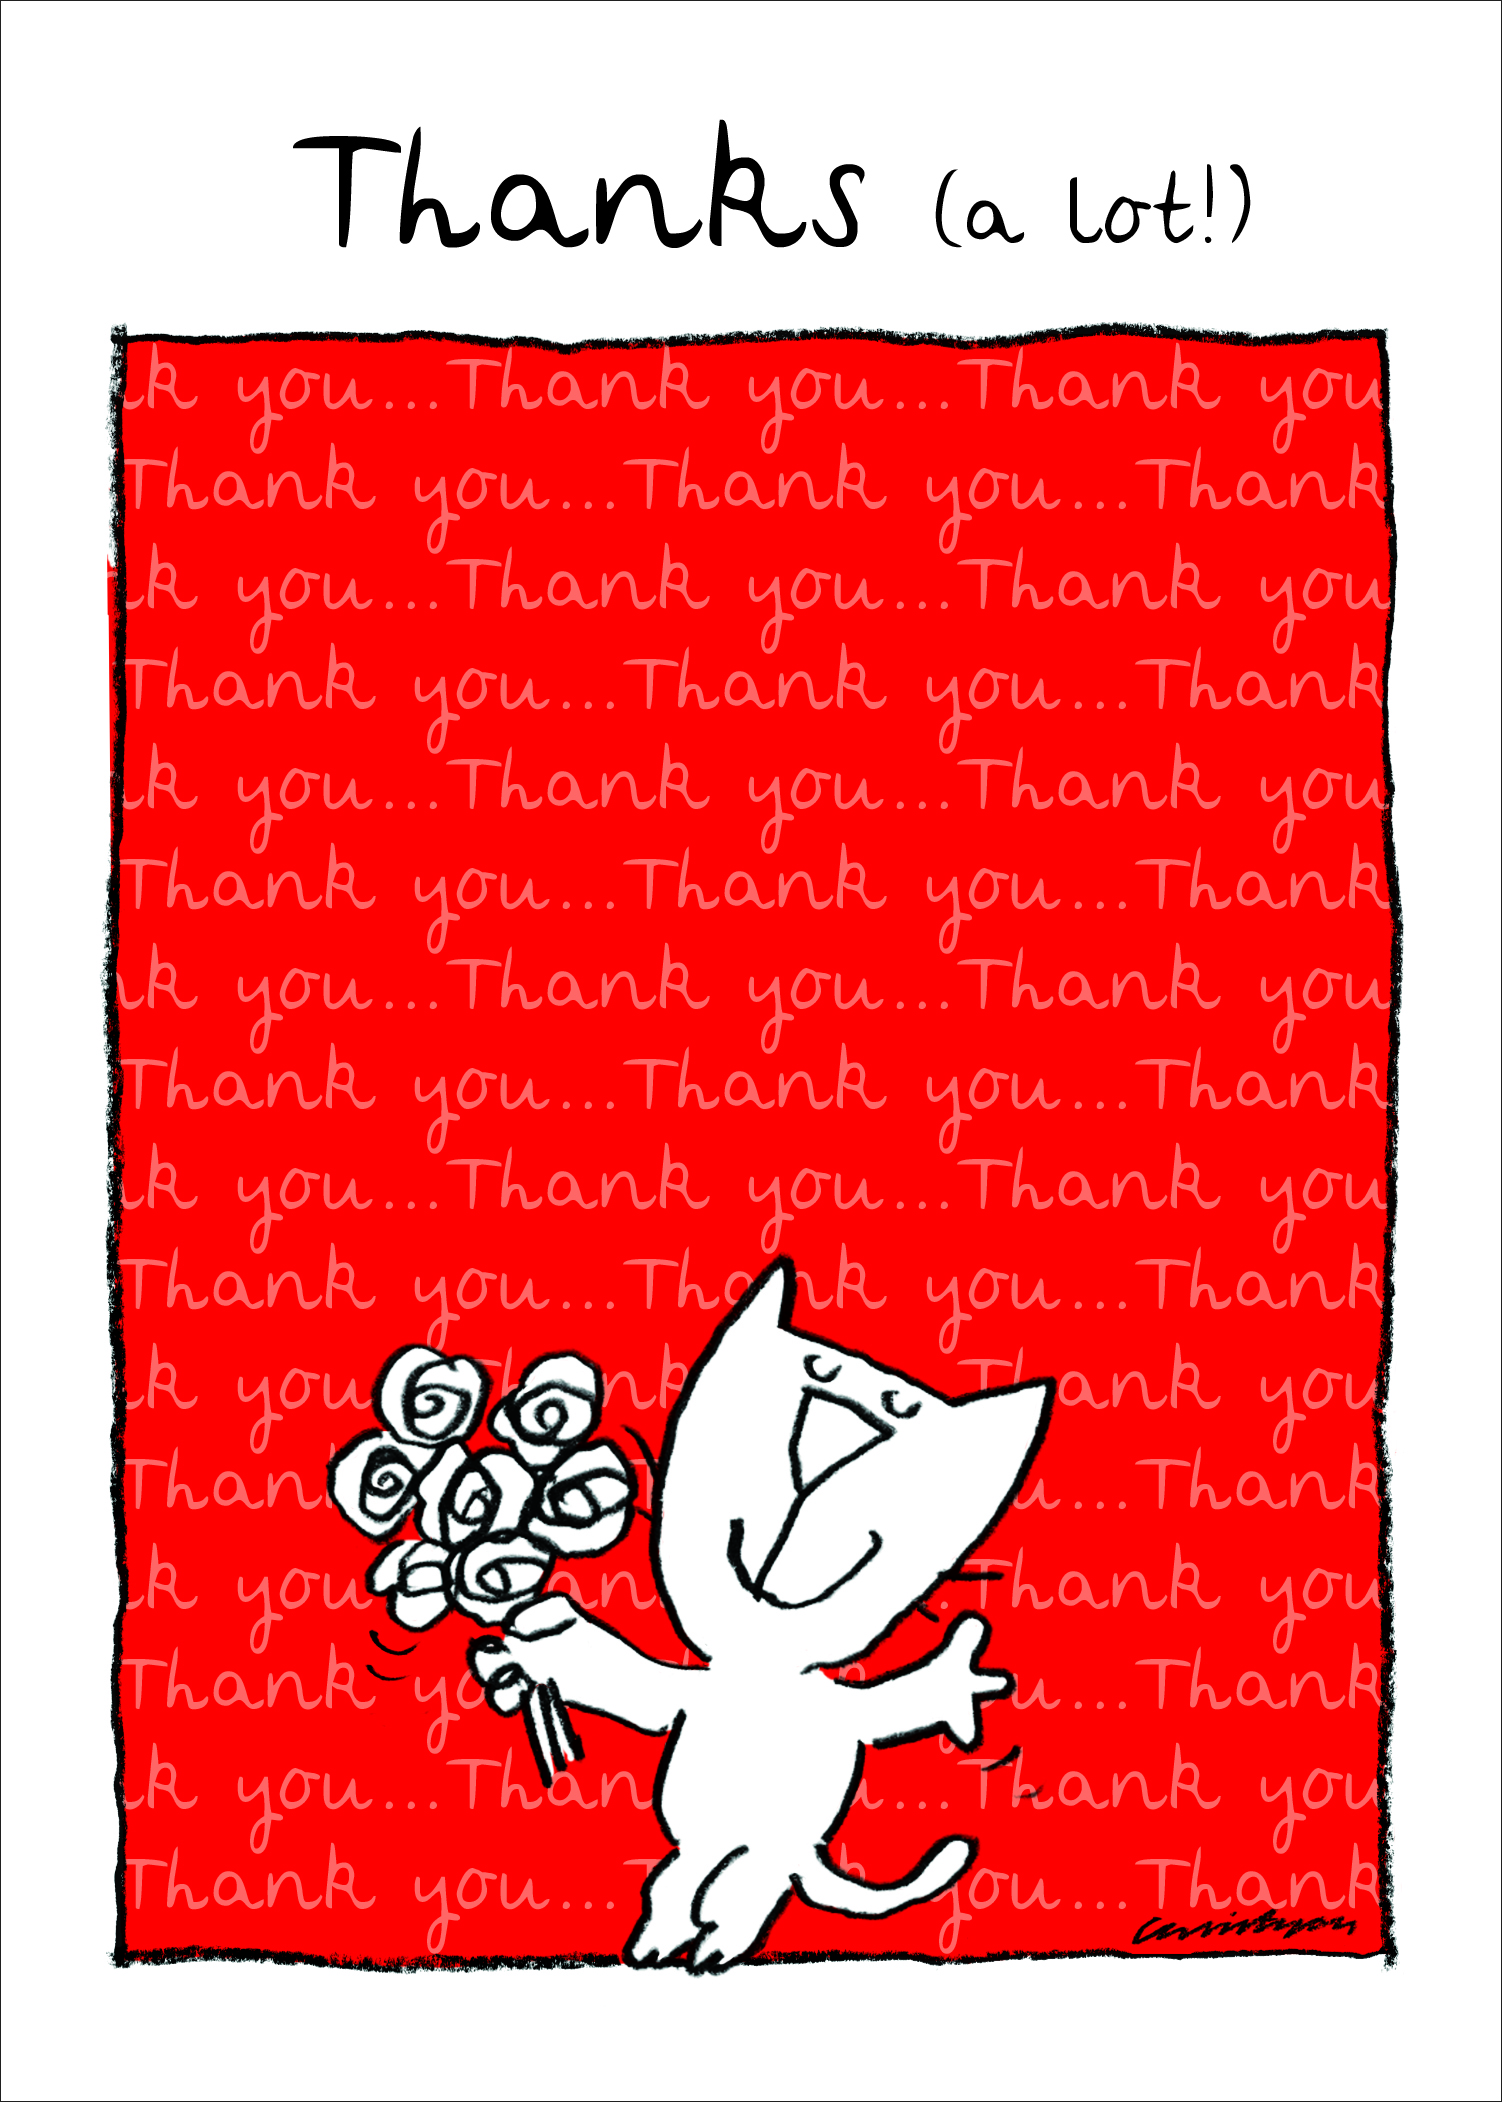 2-Thanks! (a lot!)...jpg